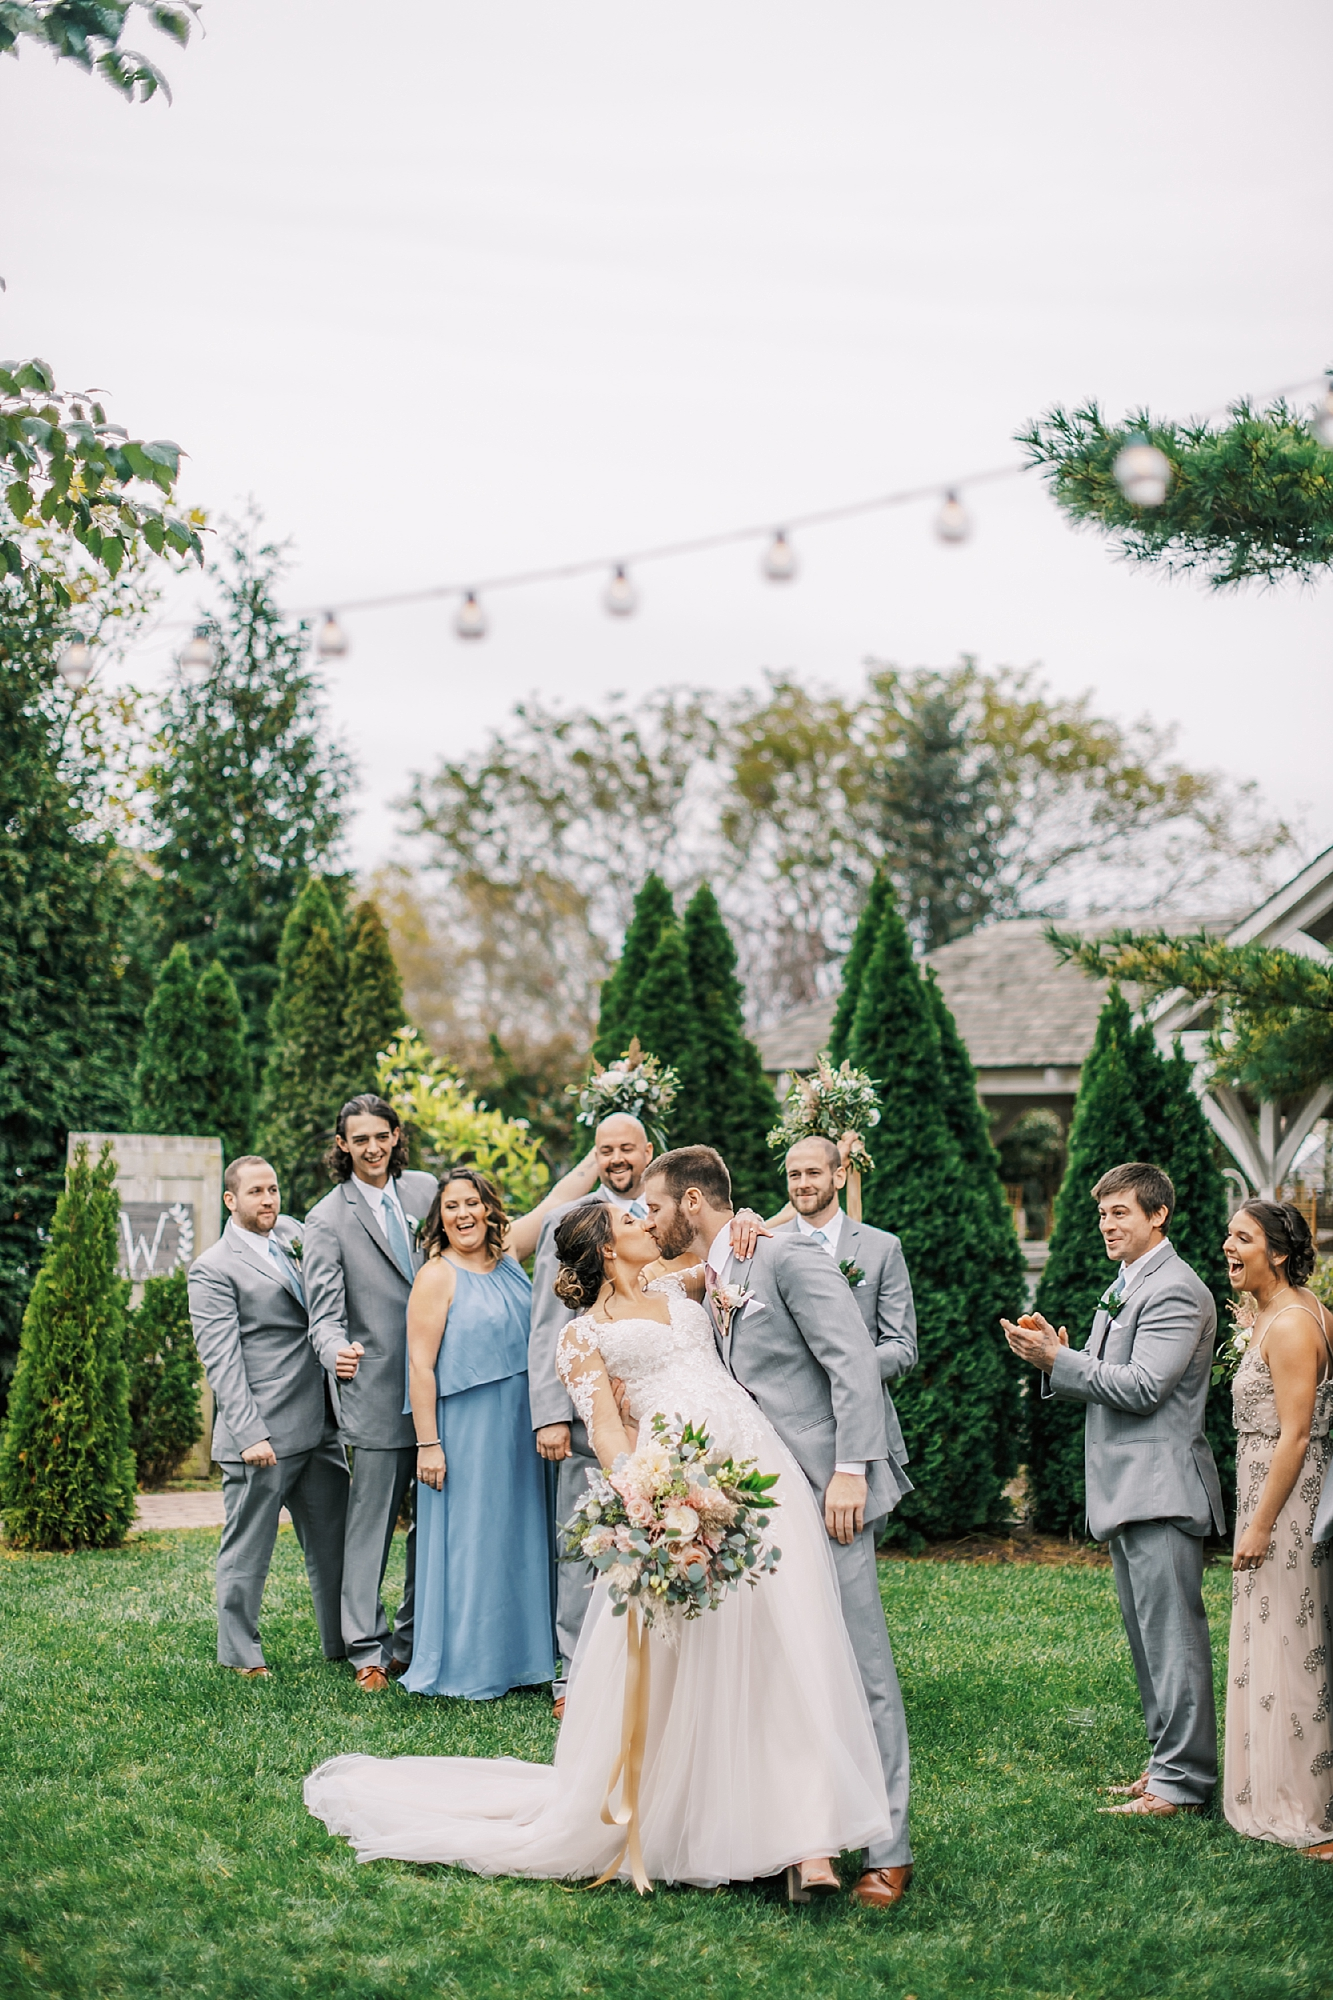 Sweet Garden Wedding Photography Abbie Holmes Estate in Cape May NJ by Magdalena Studios 0035